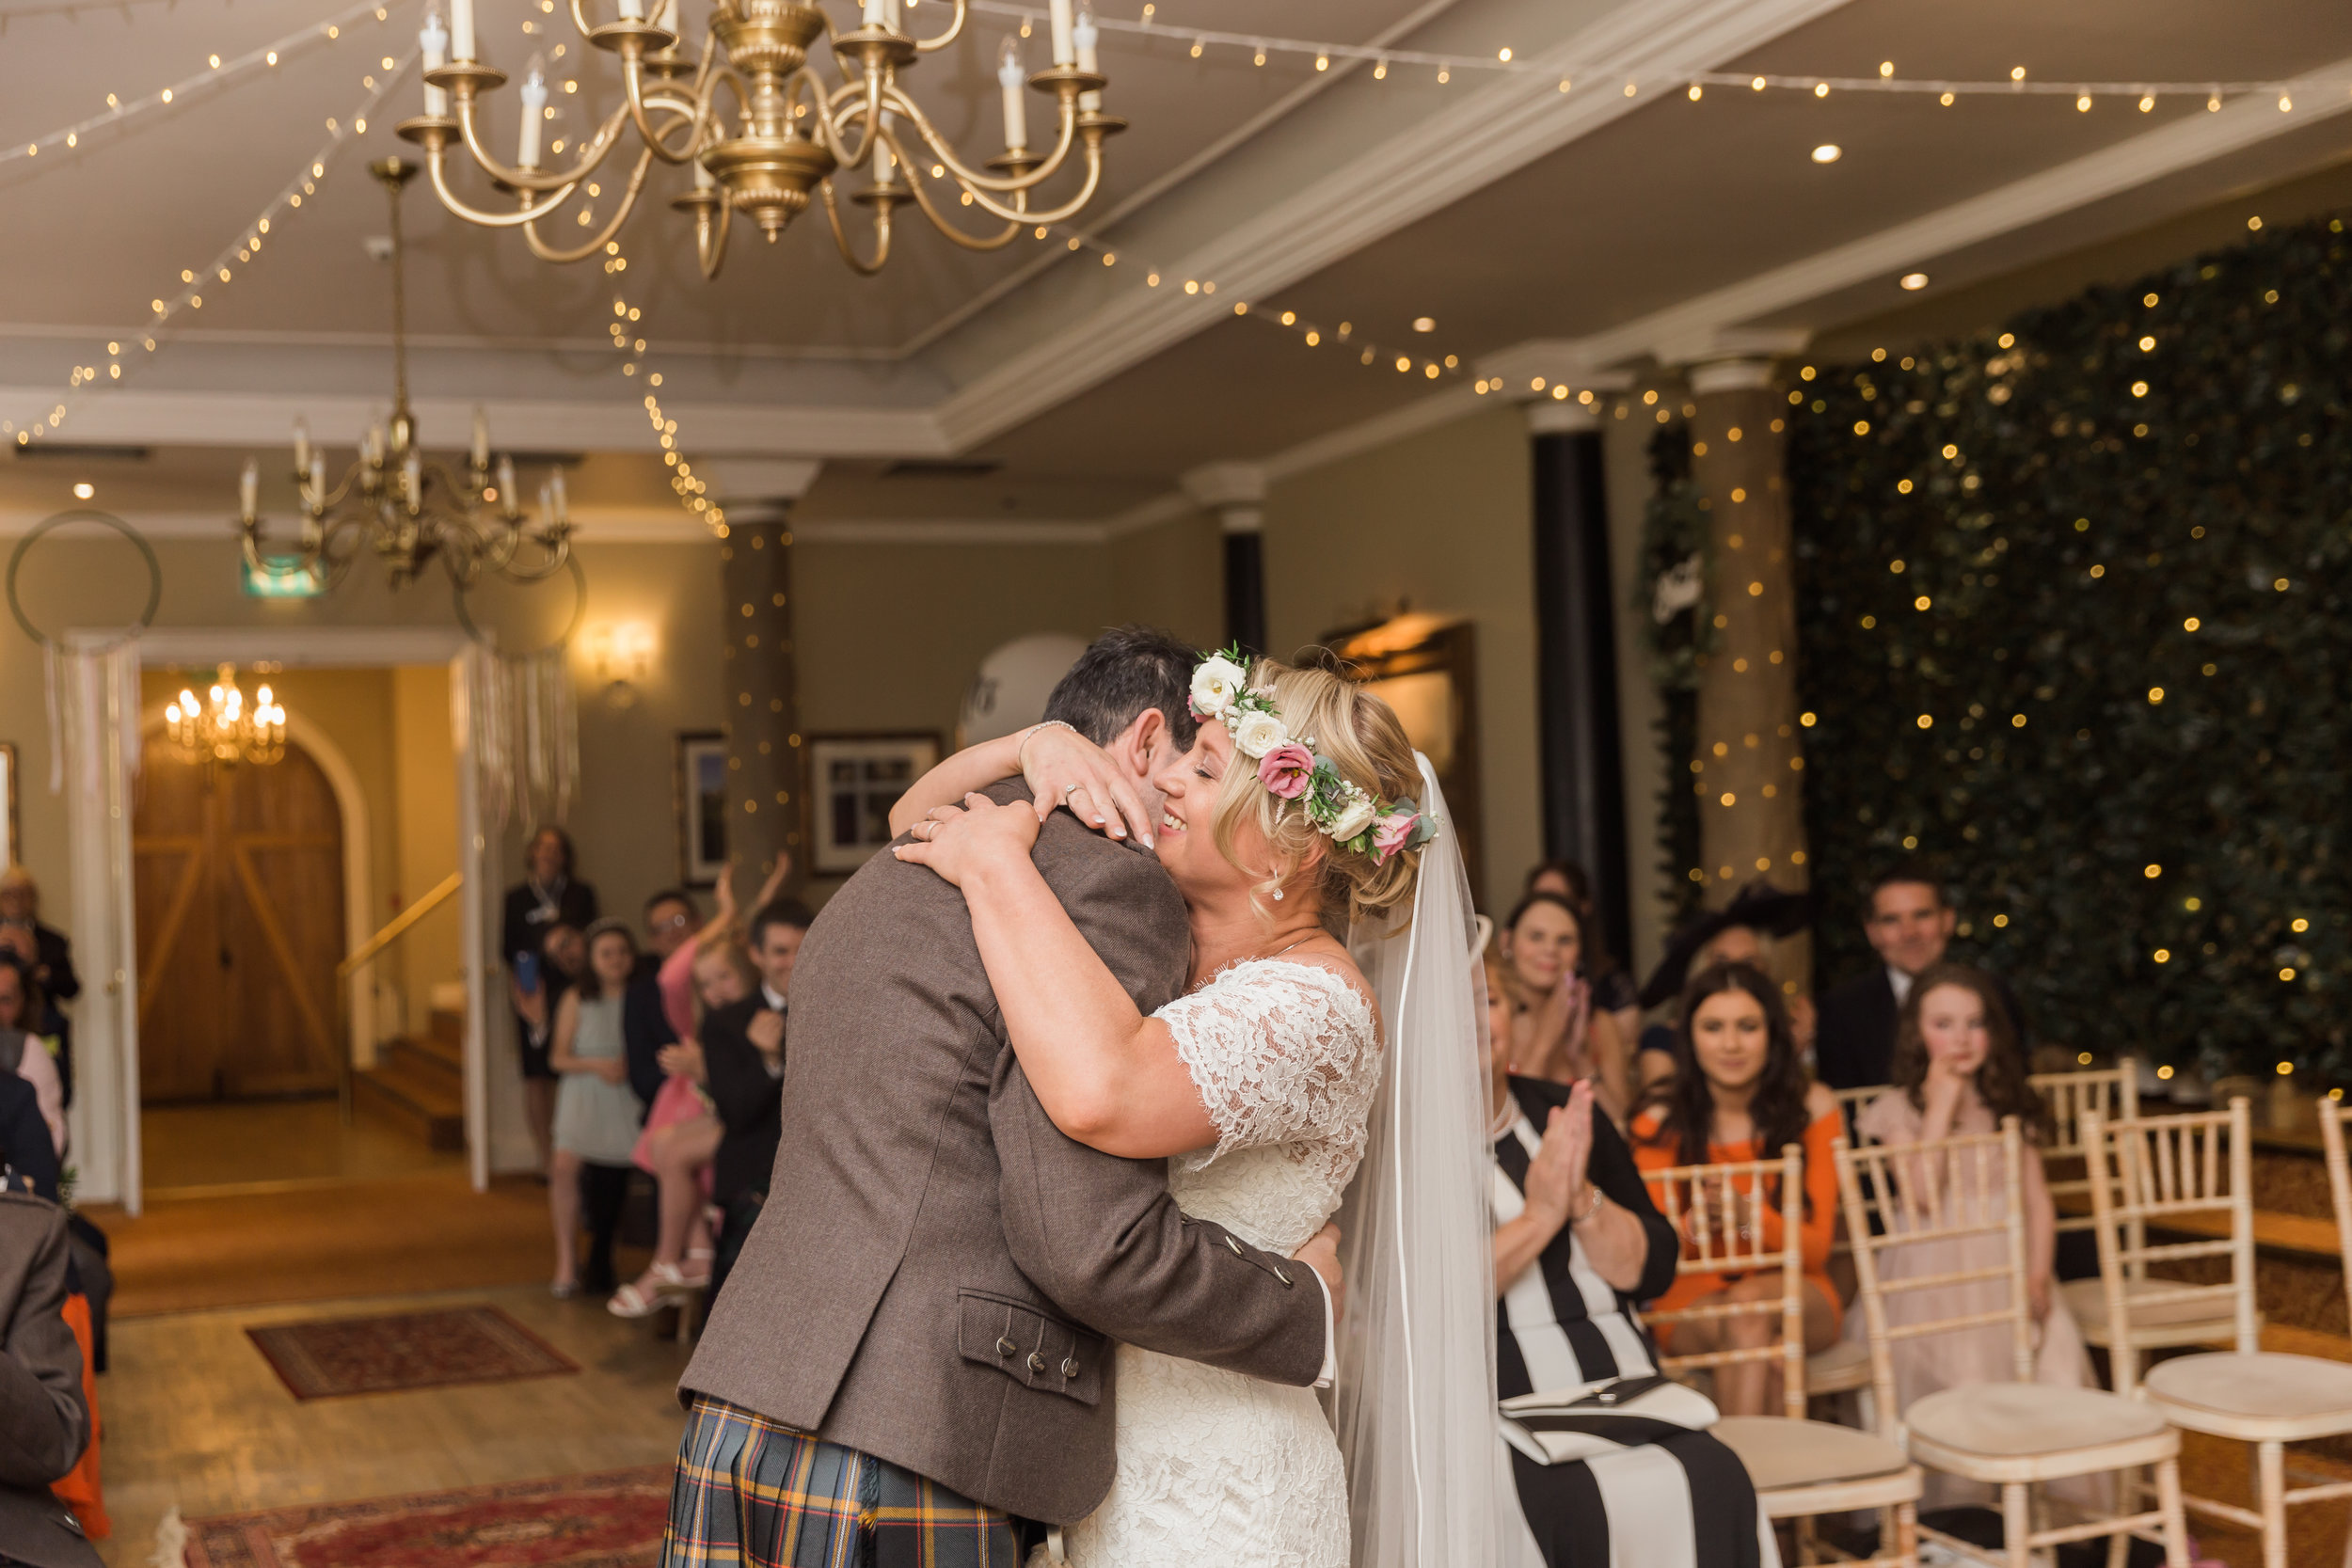 Danirosephotography.weddingphotographer.dycephotographer.aberdeenweddingphotography.pittodriehousewedding13.jpg